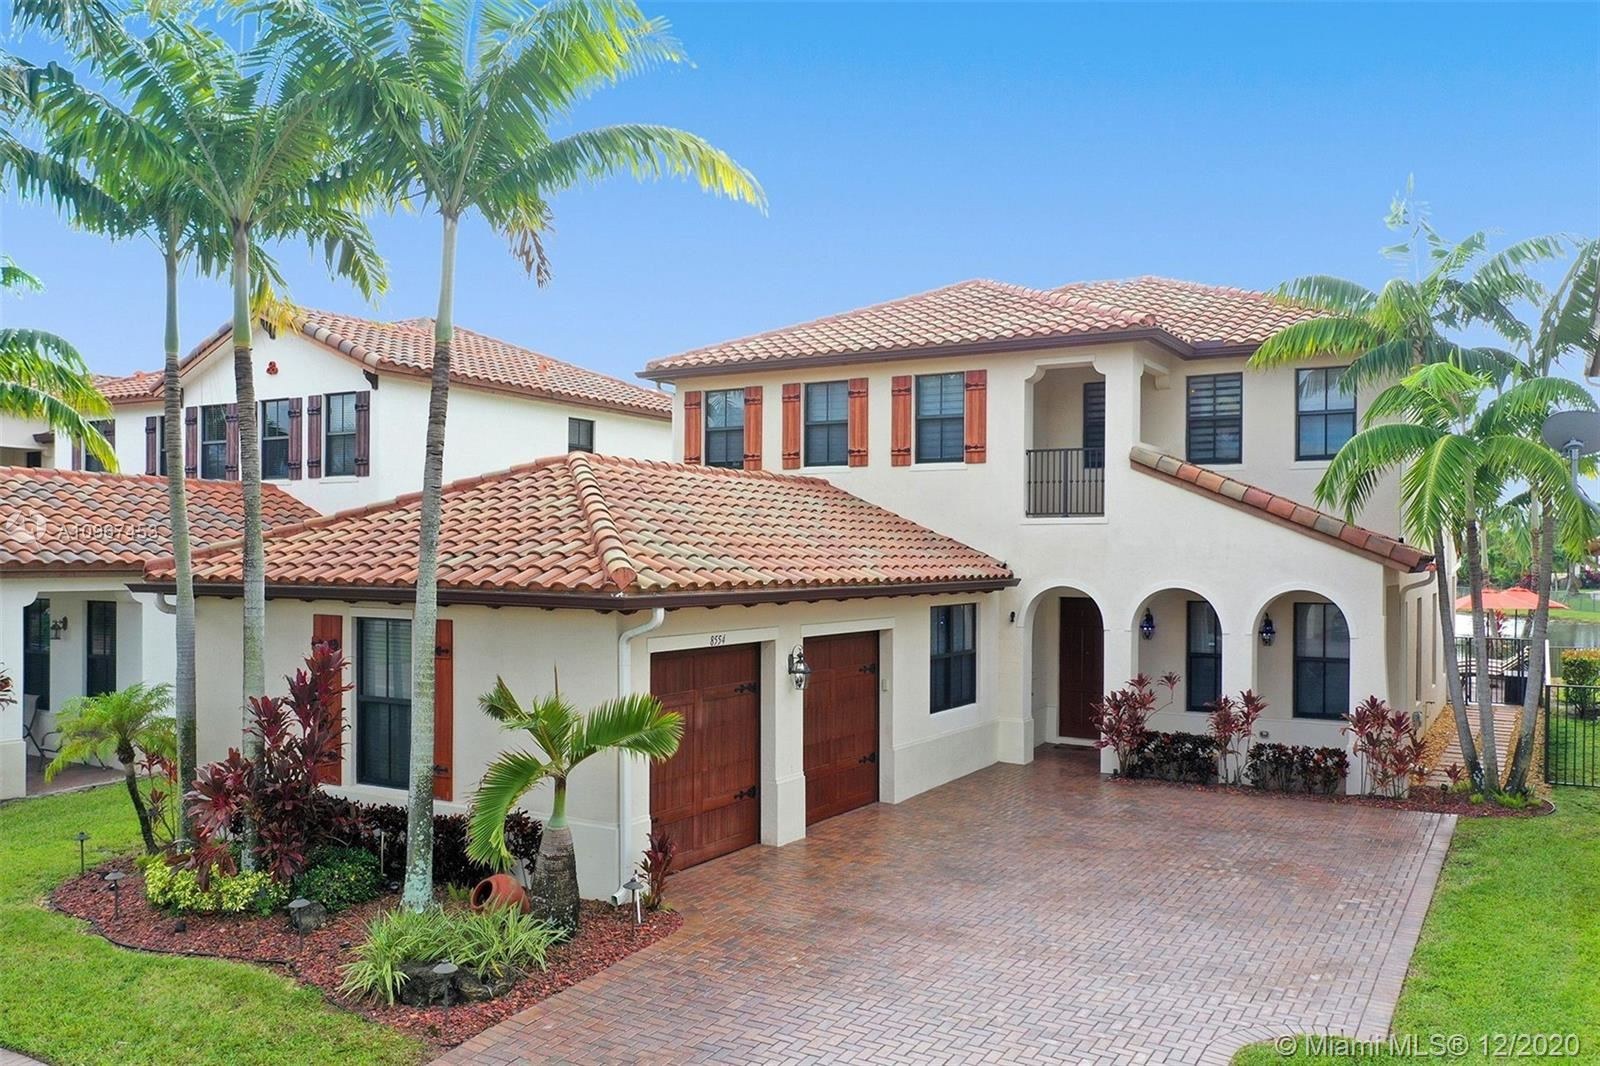 8554 NW 37th Ct, Cooper City, FL 33024 - #: A10967453